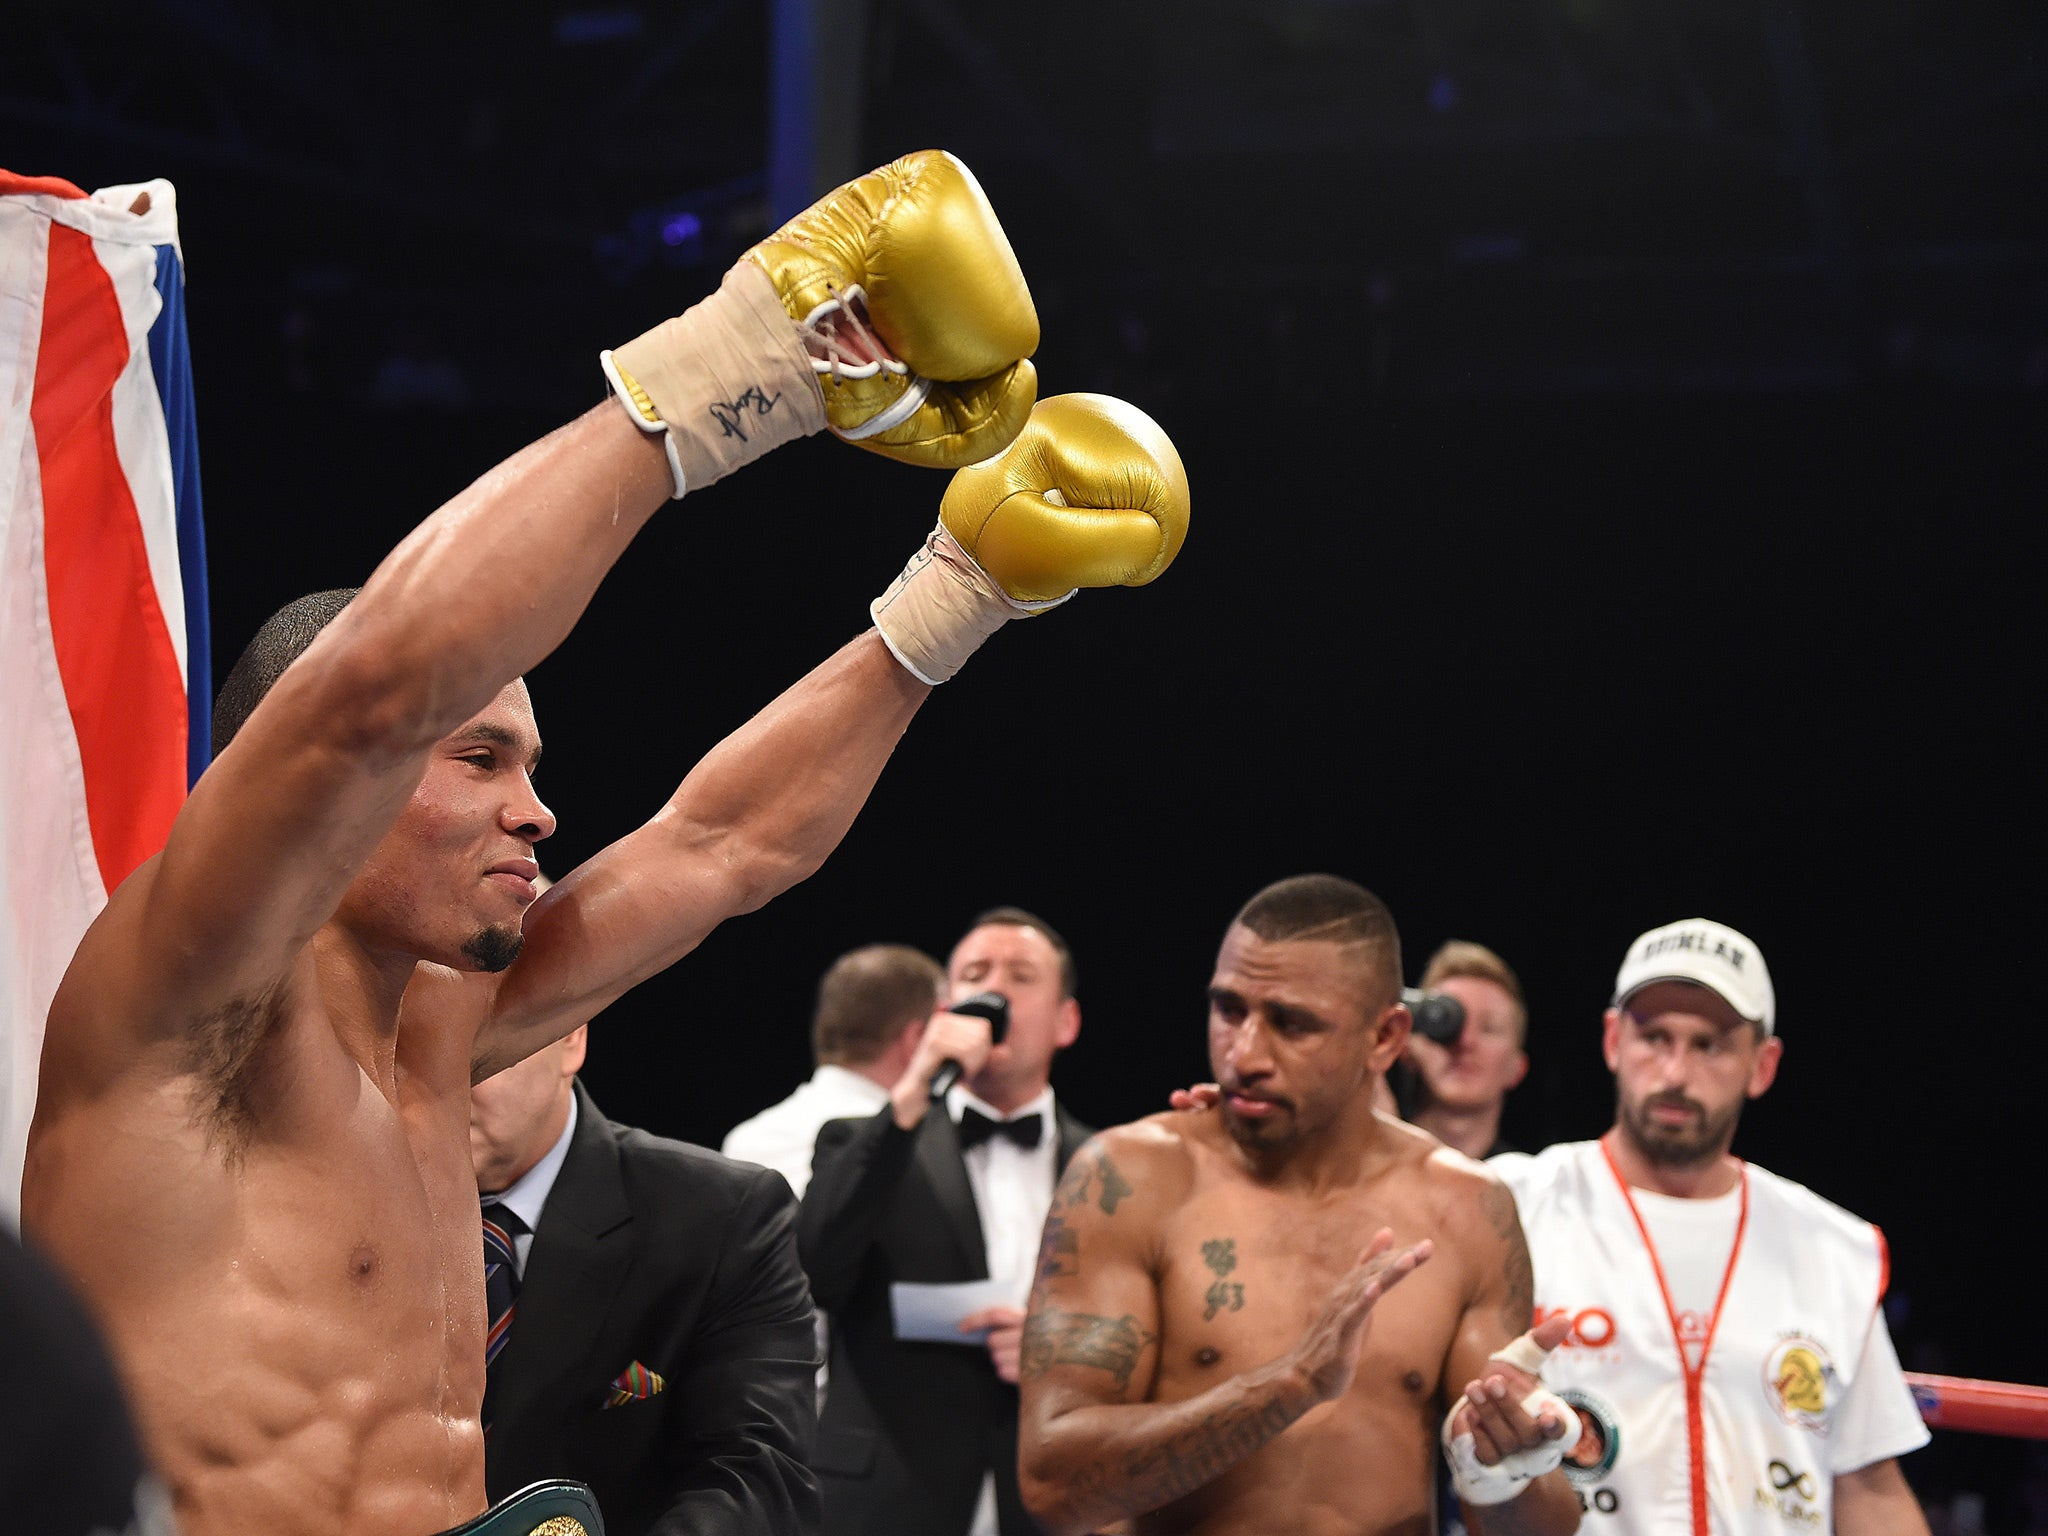 Where next for Chris Eubank Jr after the demolition of Renold Quinlan?